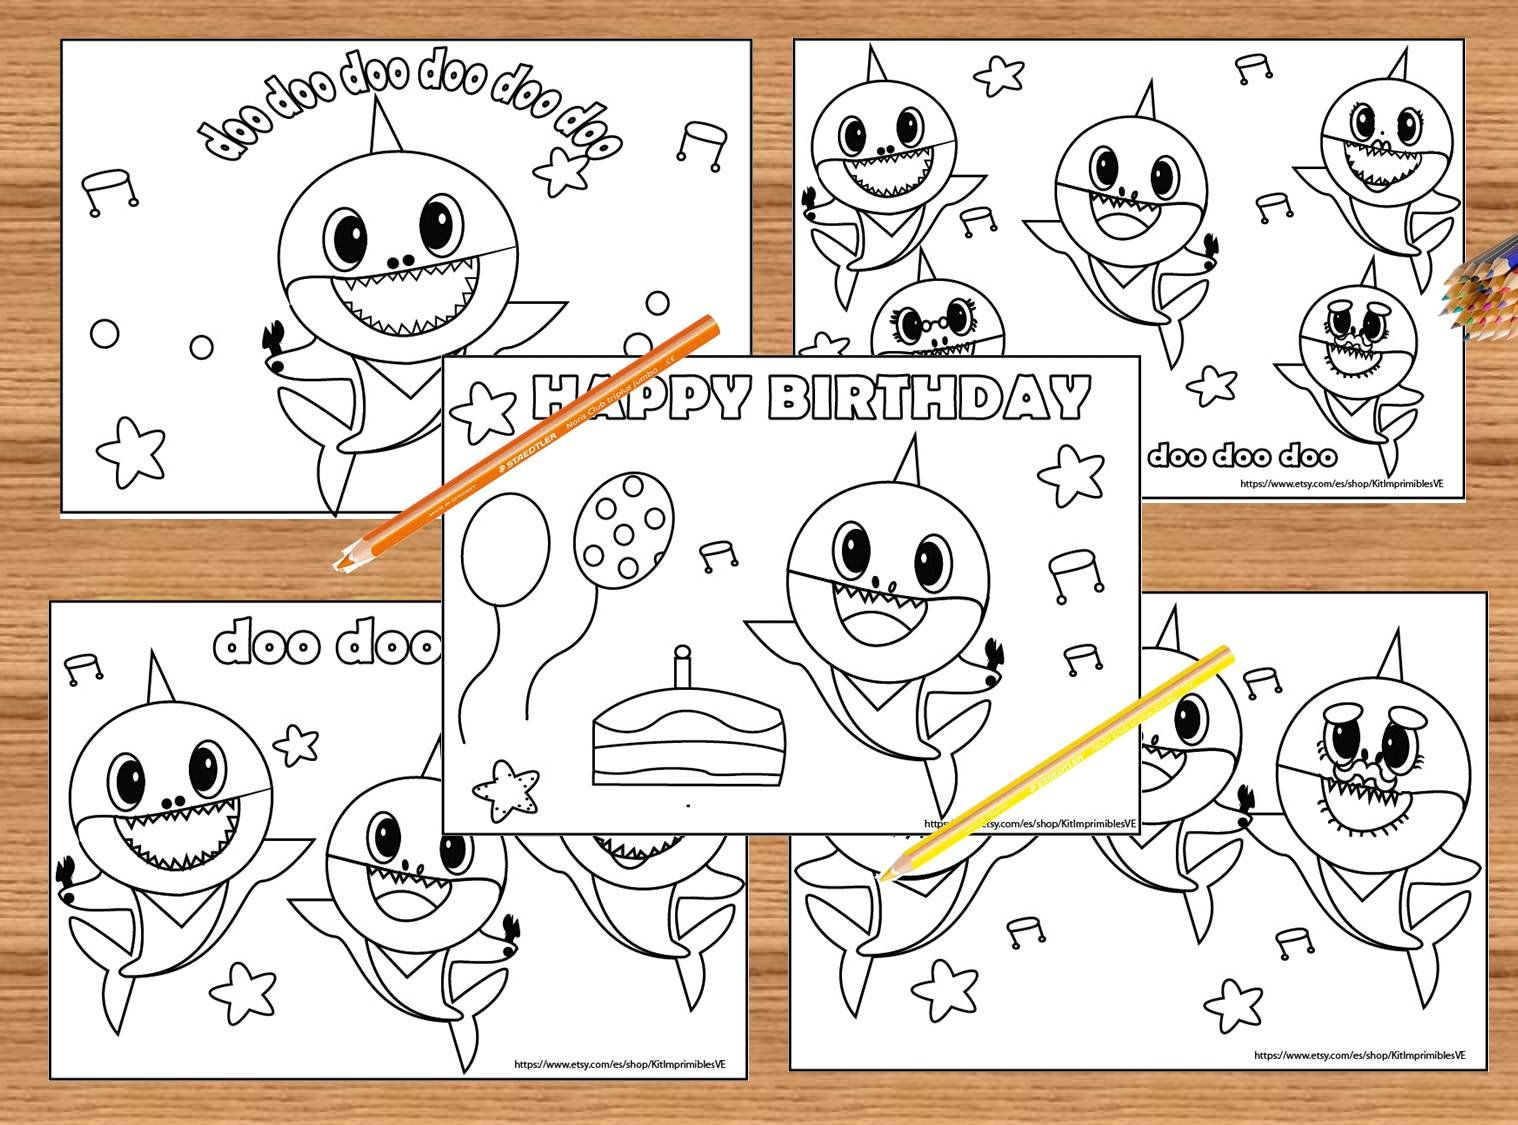 Baby Shark Song 10 Coloring Pages Super Simple Coloring Etsy Shark Coloring Pages Baby Shark Coloring Pages